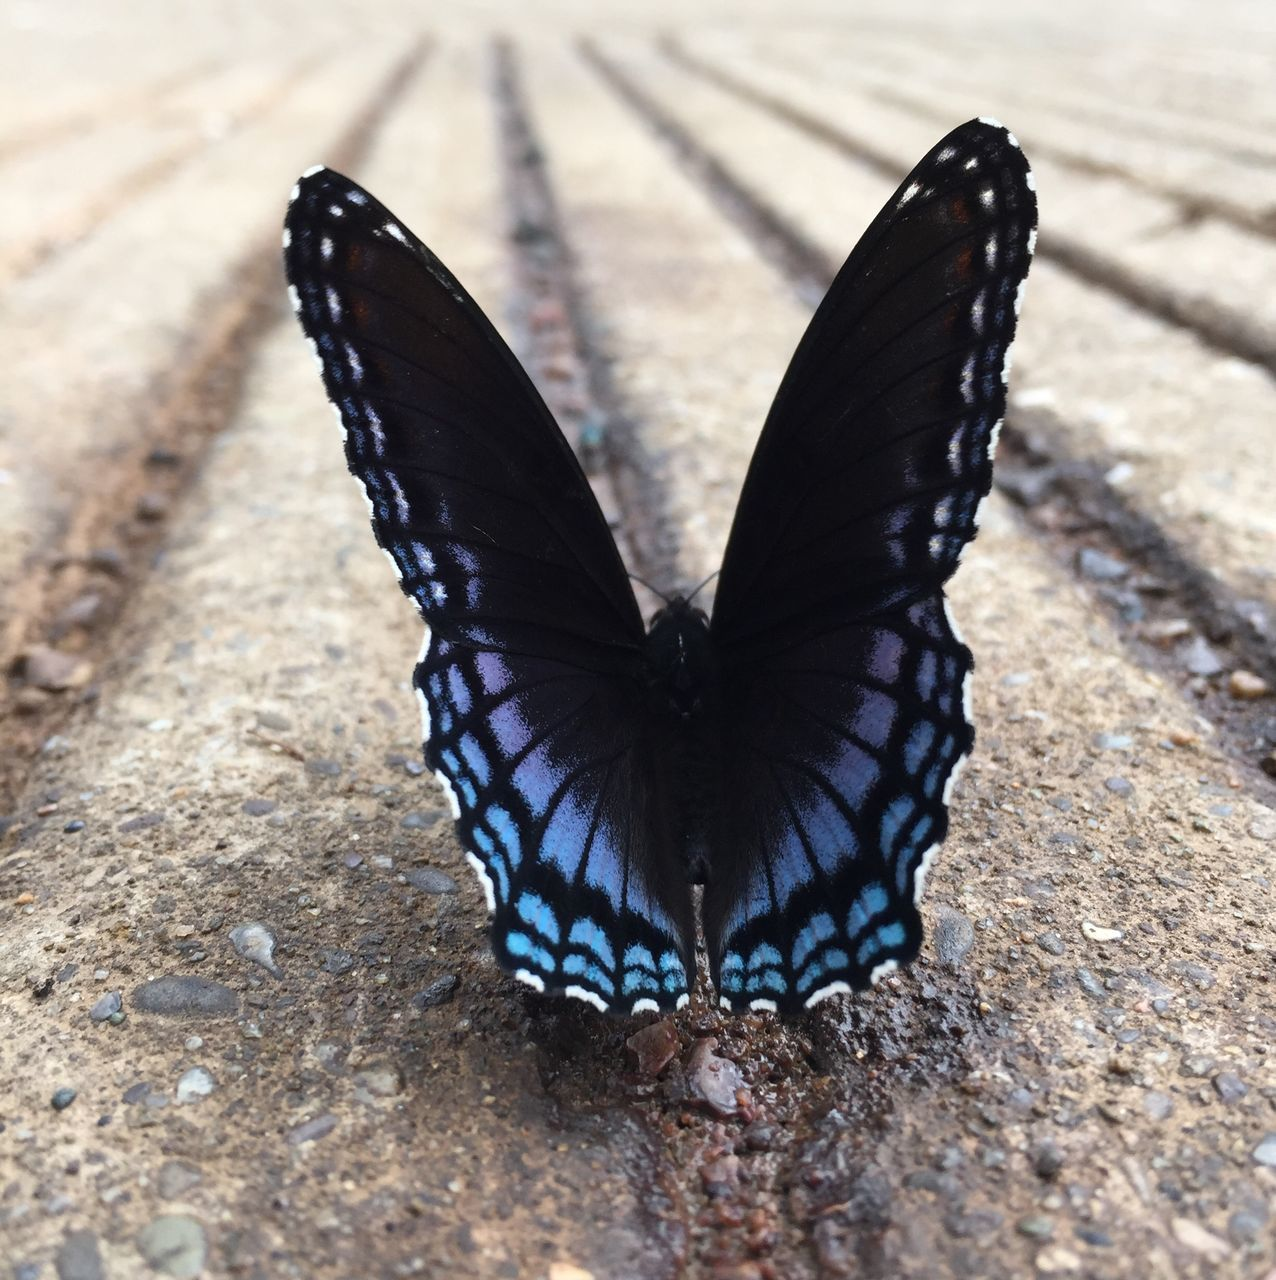 Close-Up Of Butterfly On Street